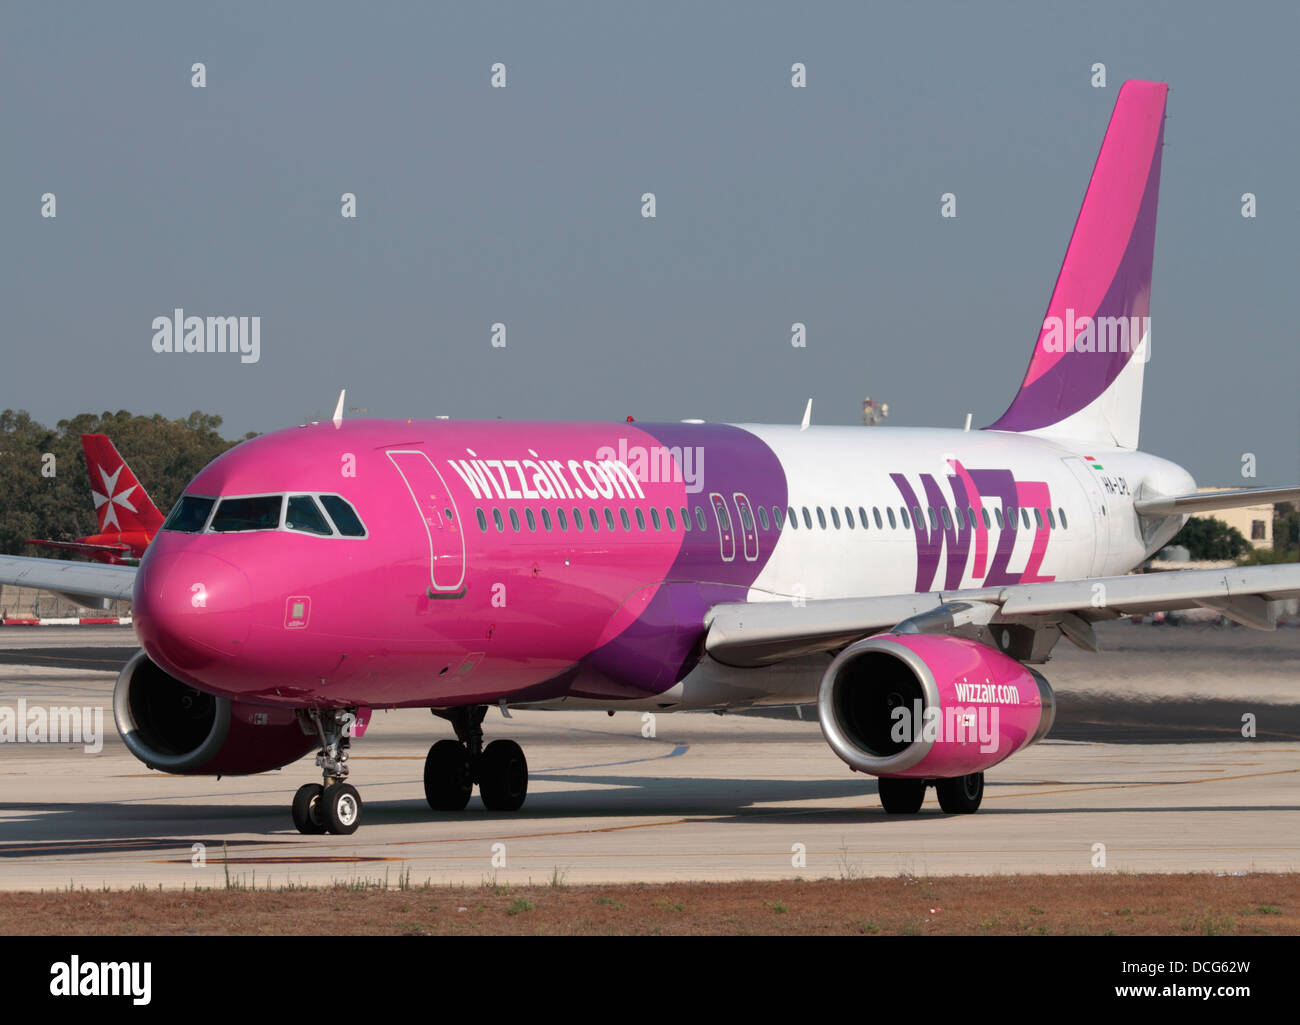 Airbus A320 jet plane belonging to the Hungarian low cost airline Wizz Air taxiing for departure from Malta - Stock Image